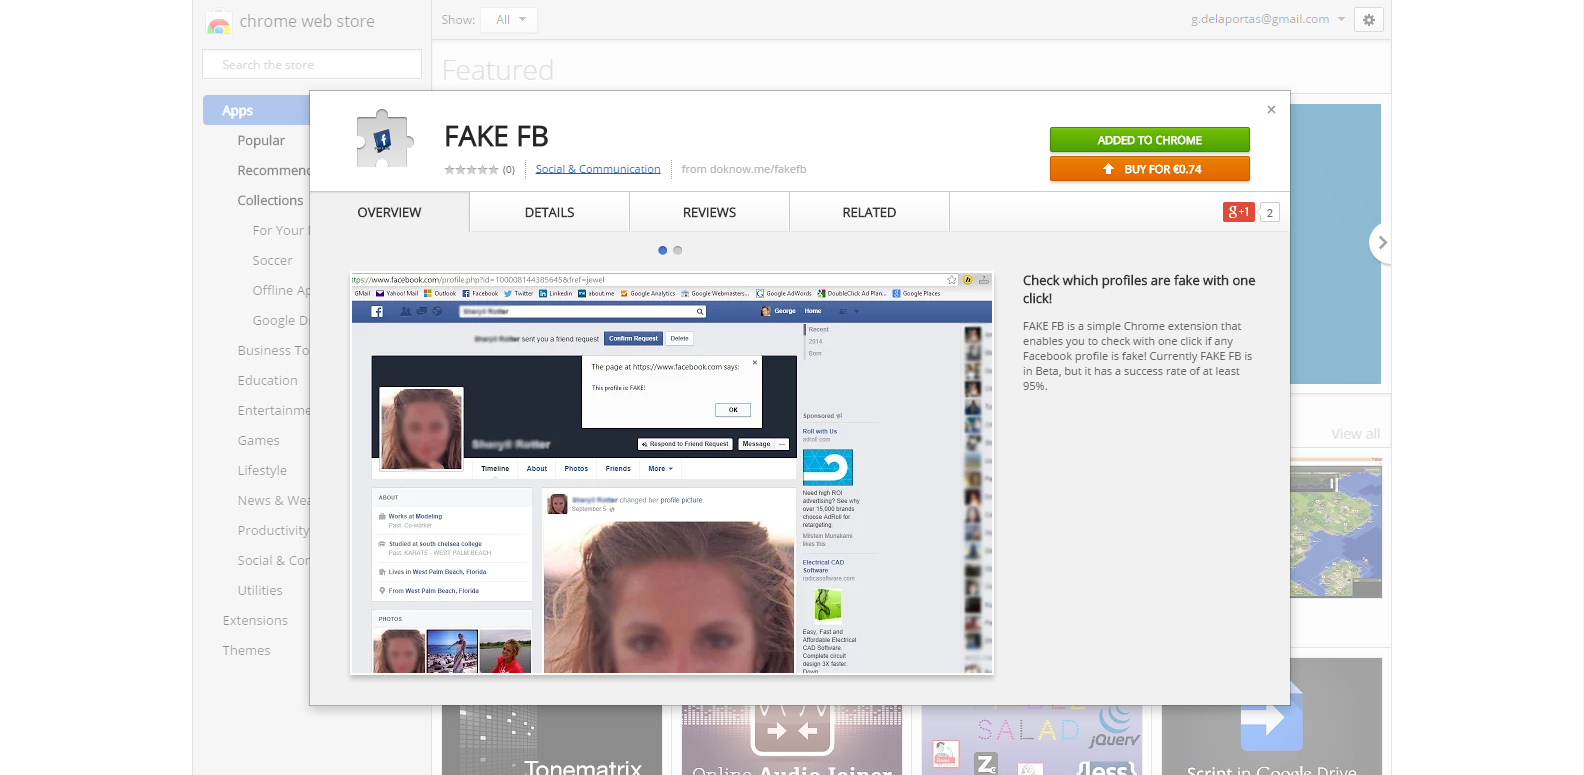 FAKE FB On Web Store